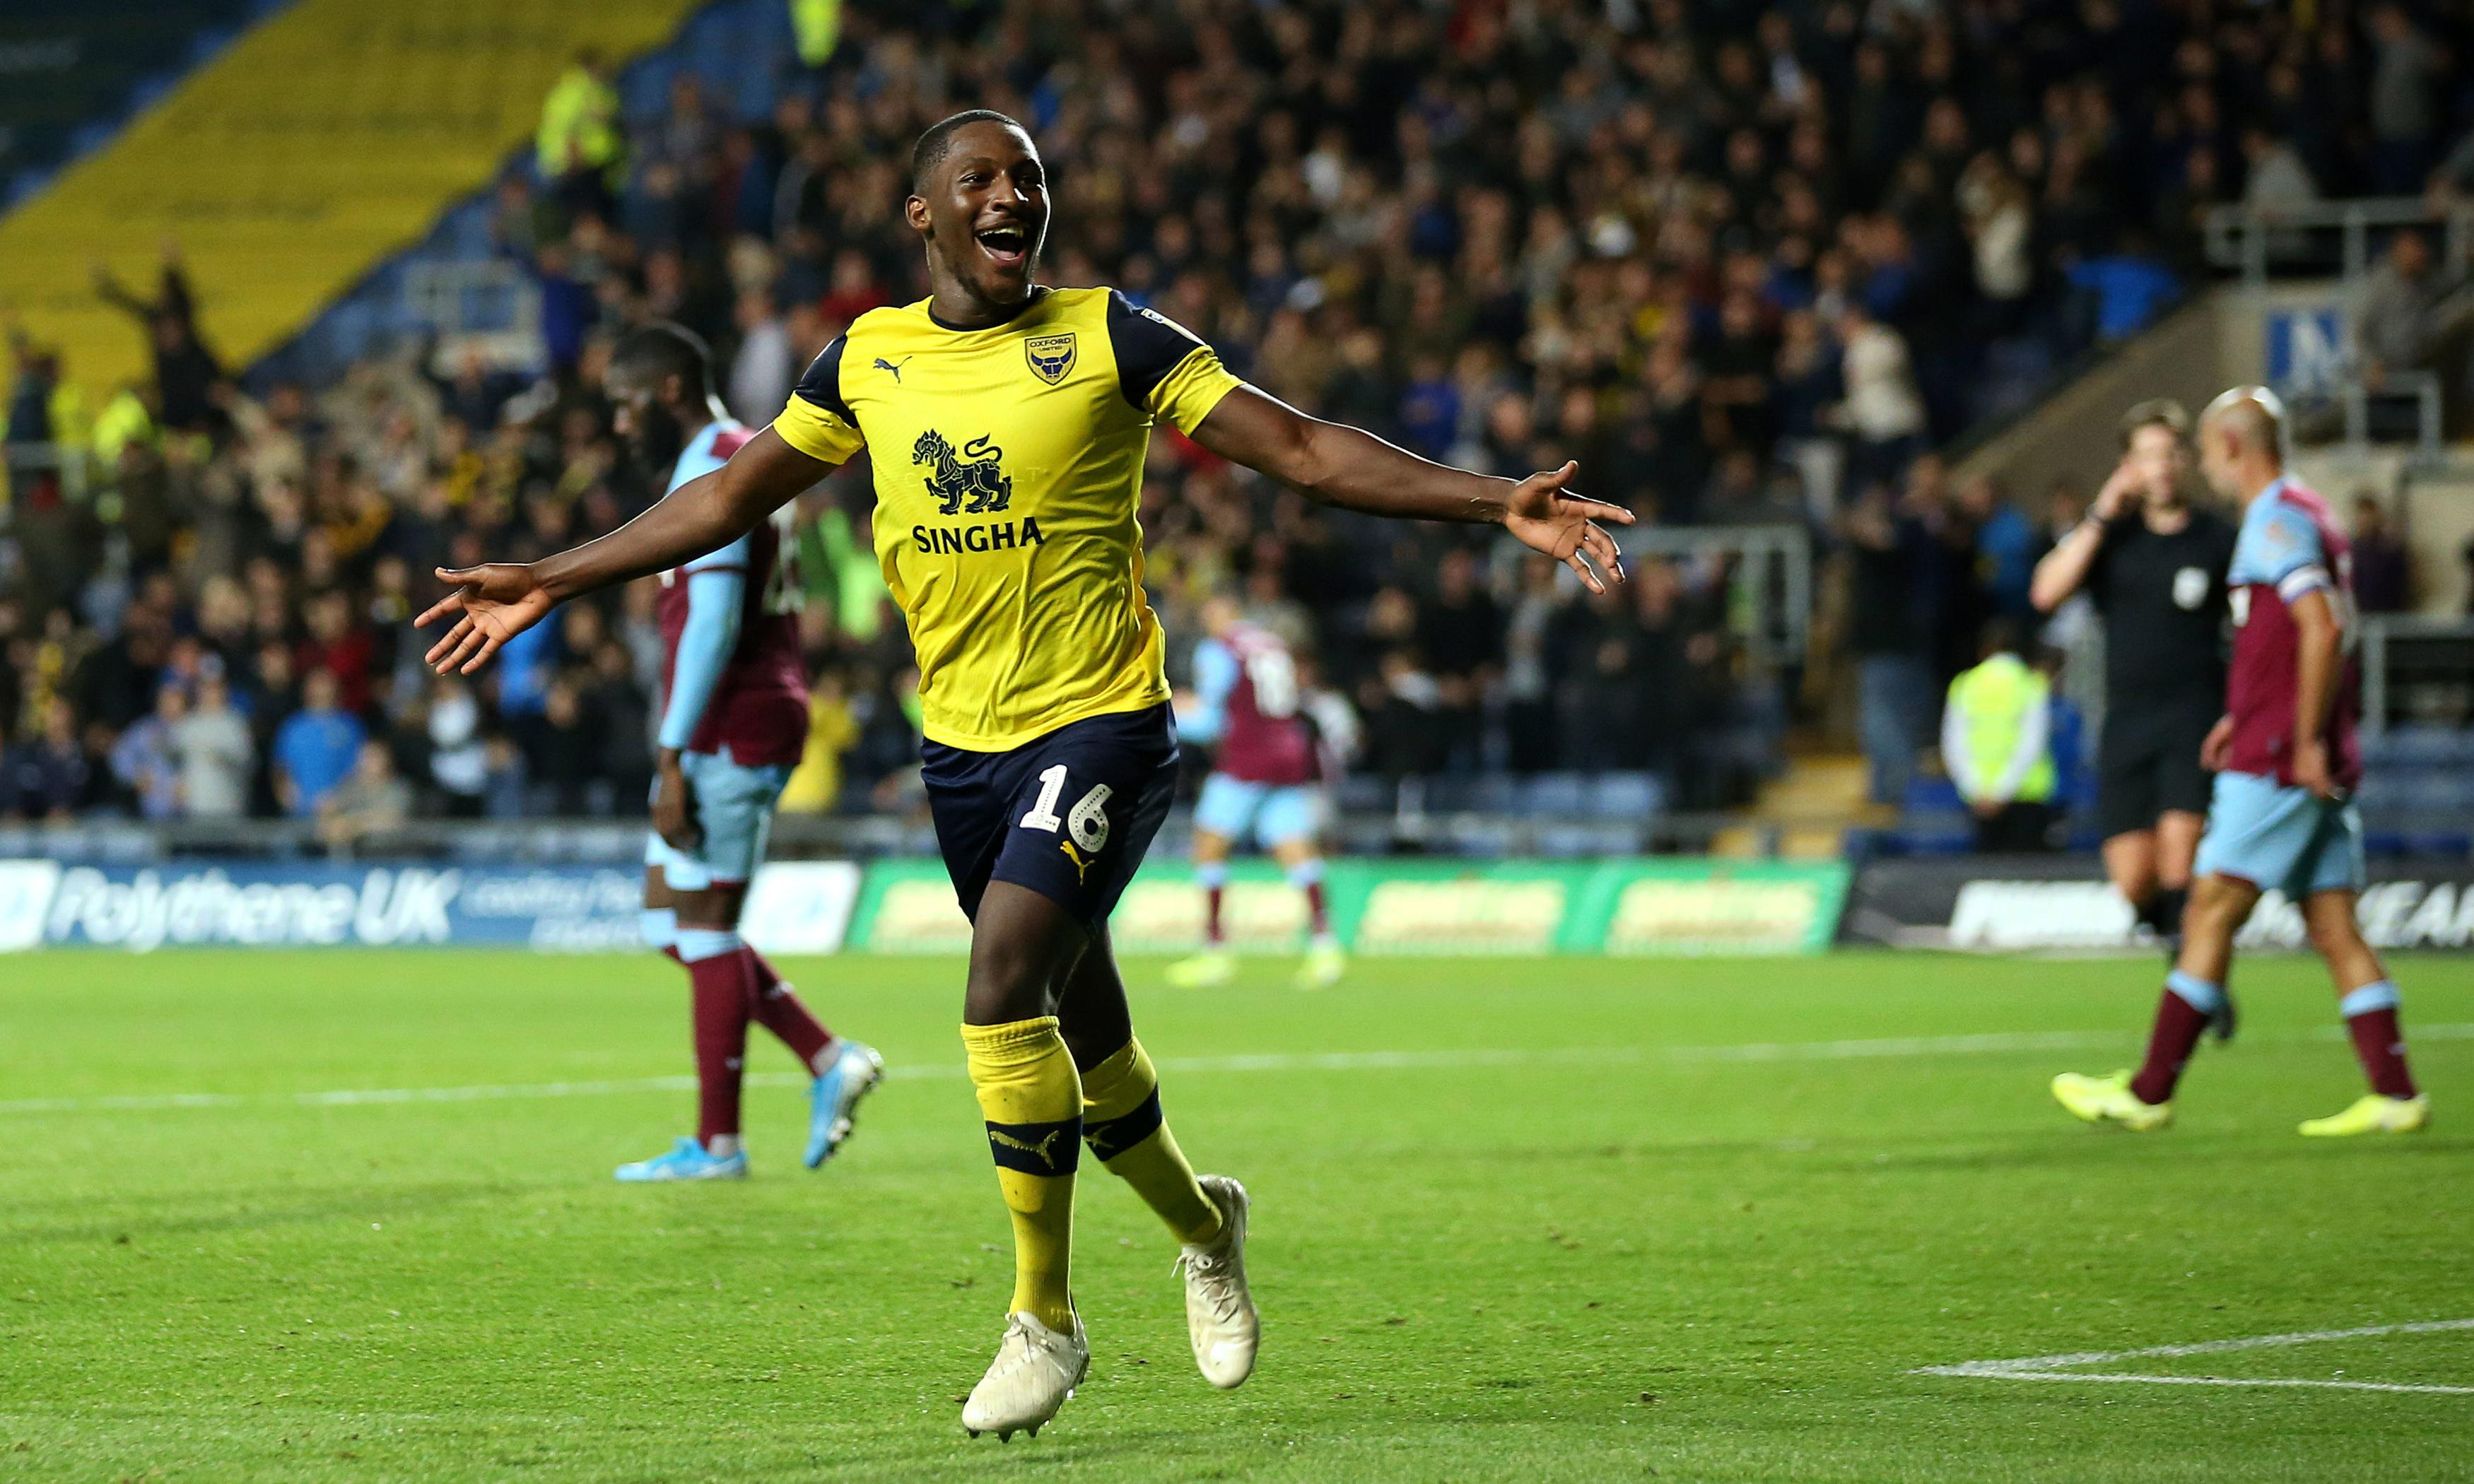 Oxford United humiliate West Ham in shock Carabao Cup thrashing